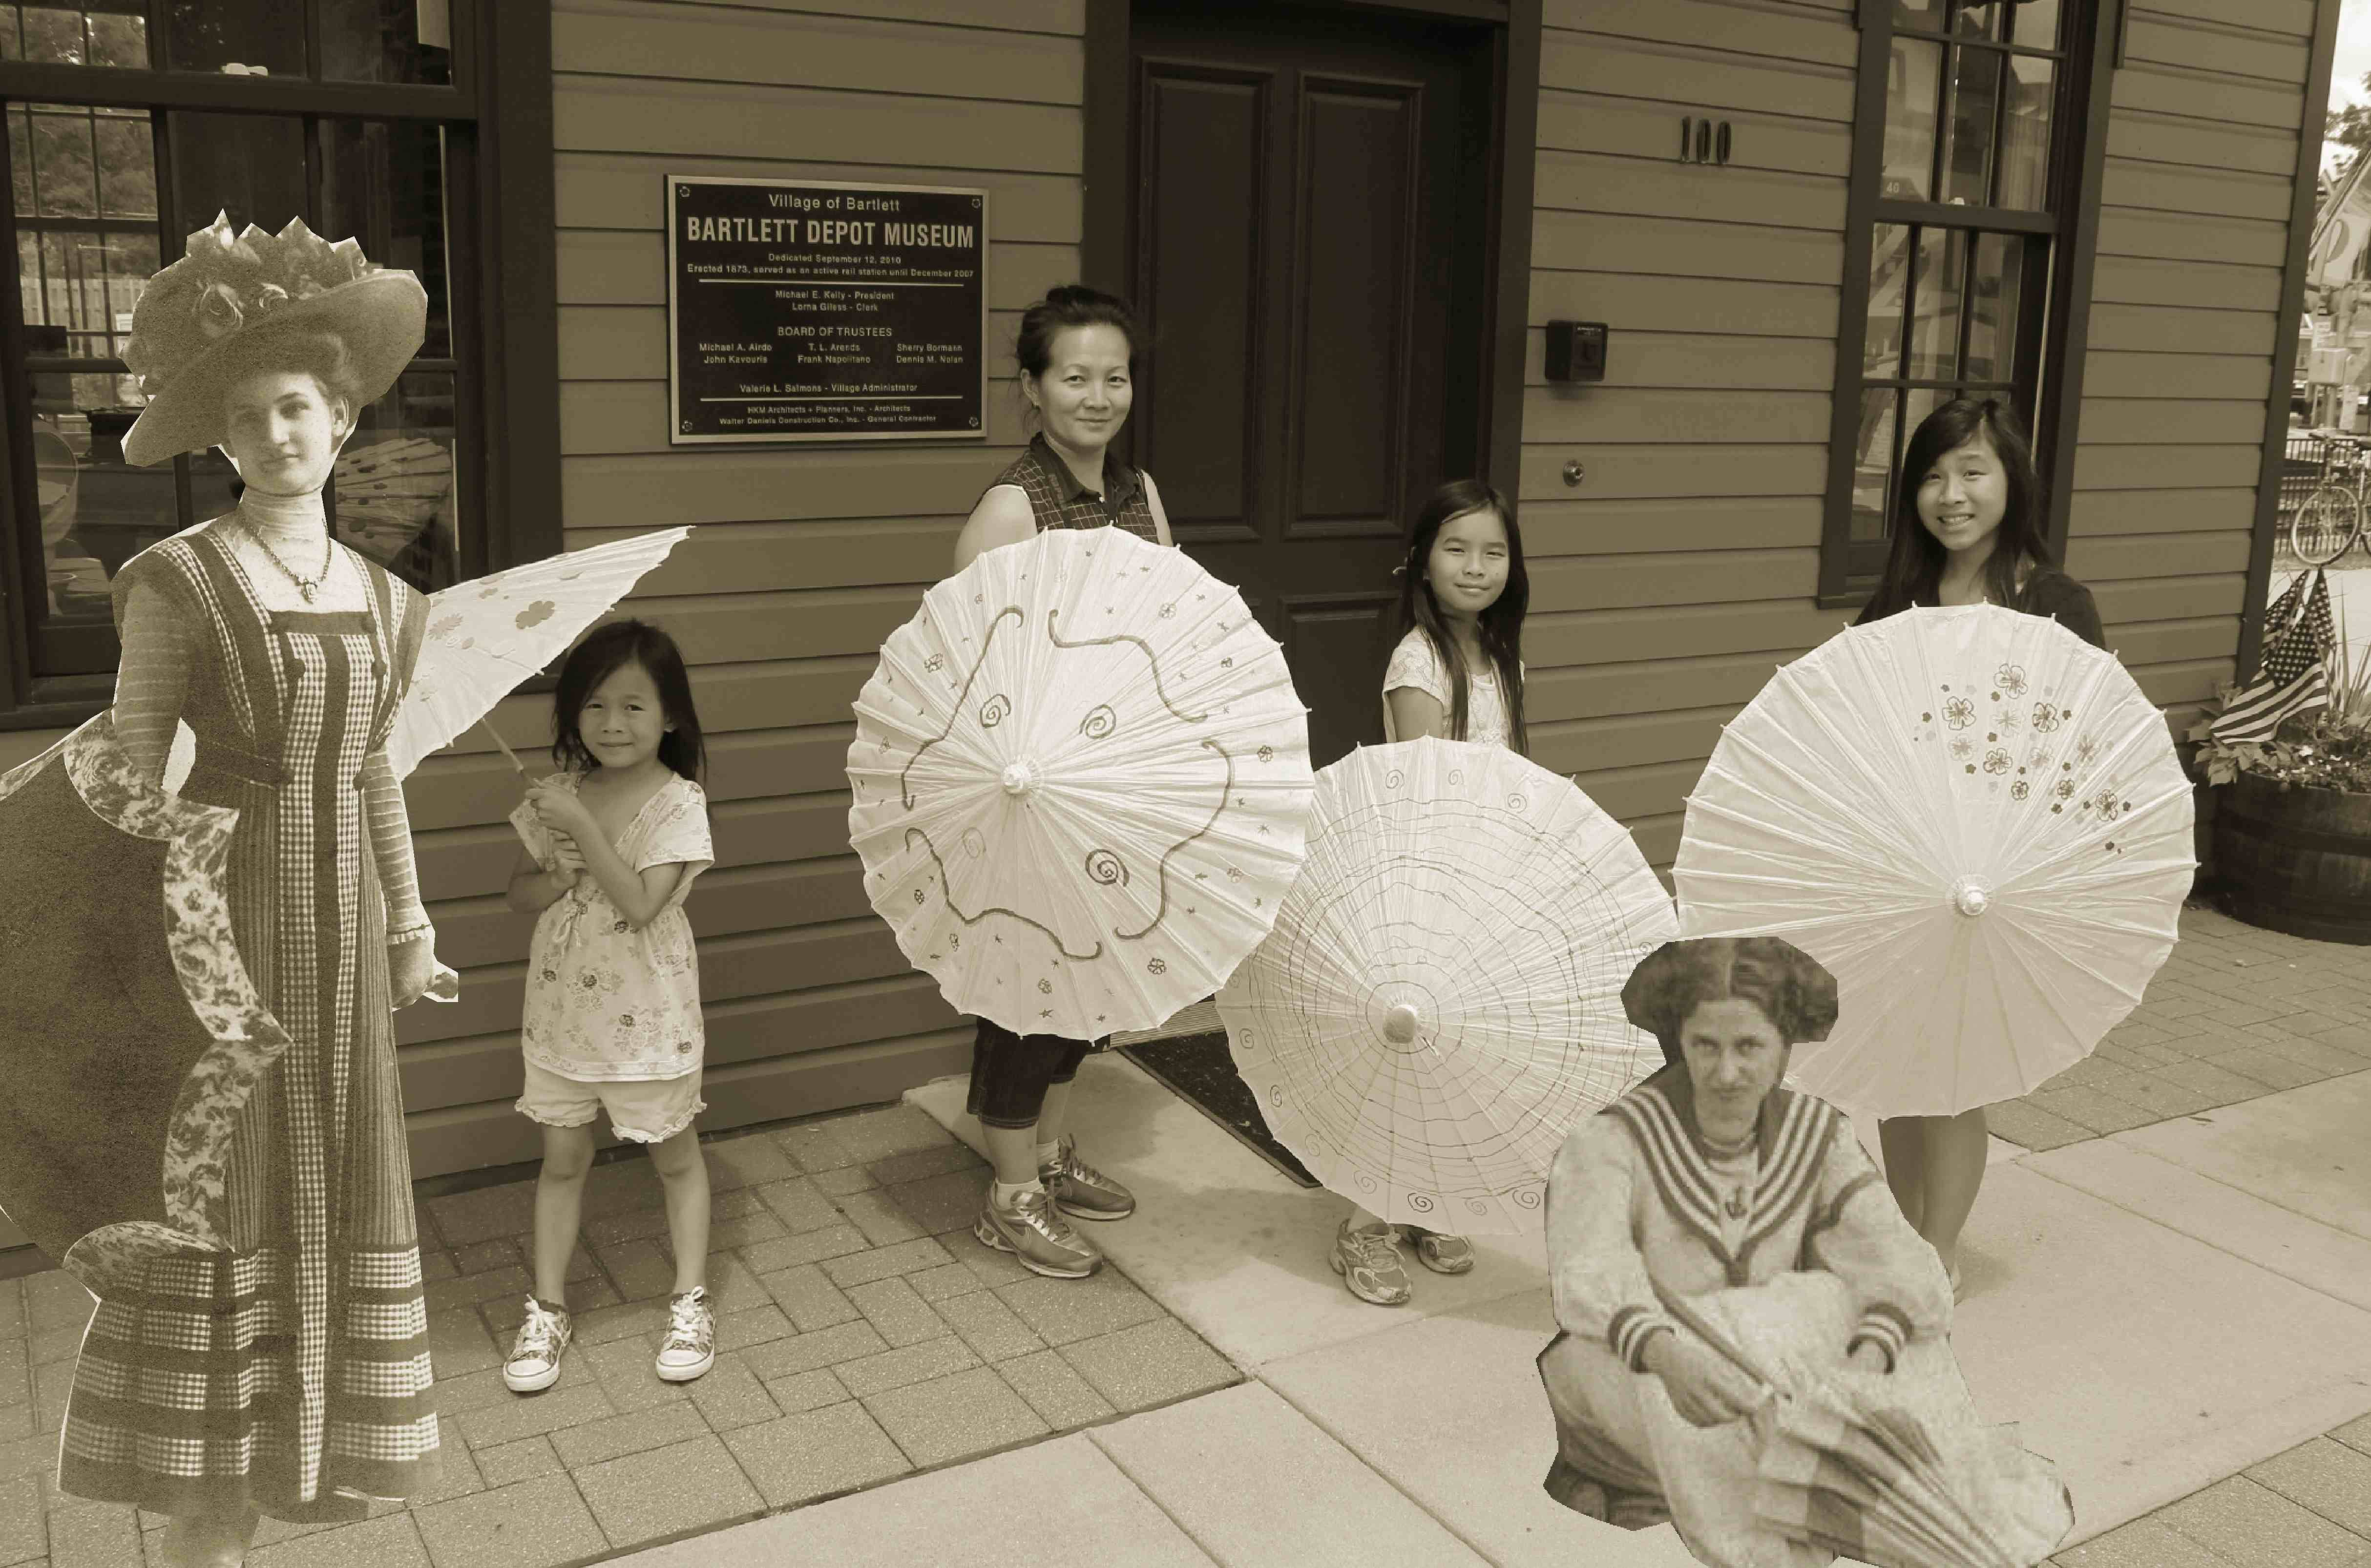 The Yu family of Bartlett shows off their parasols. Thanks to a little photo magic, early Bartlett residents Lucinda Schick Thurnau (1890-1912) and Viola Krumfuss Schult (1896-1985) provided some inspiration!